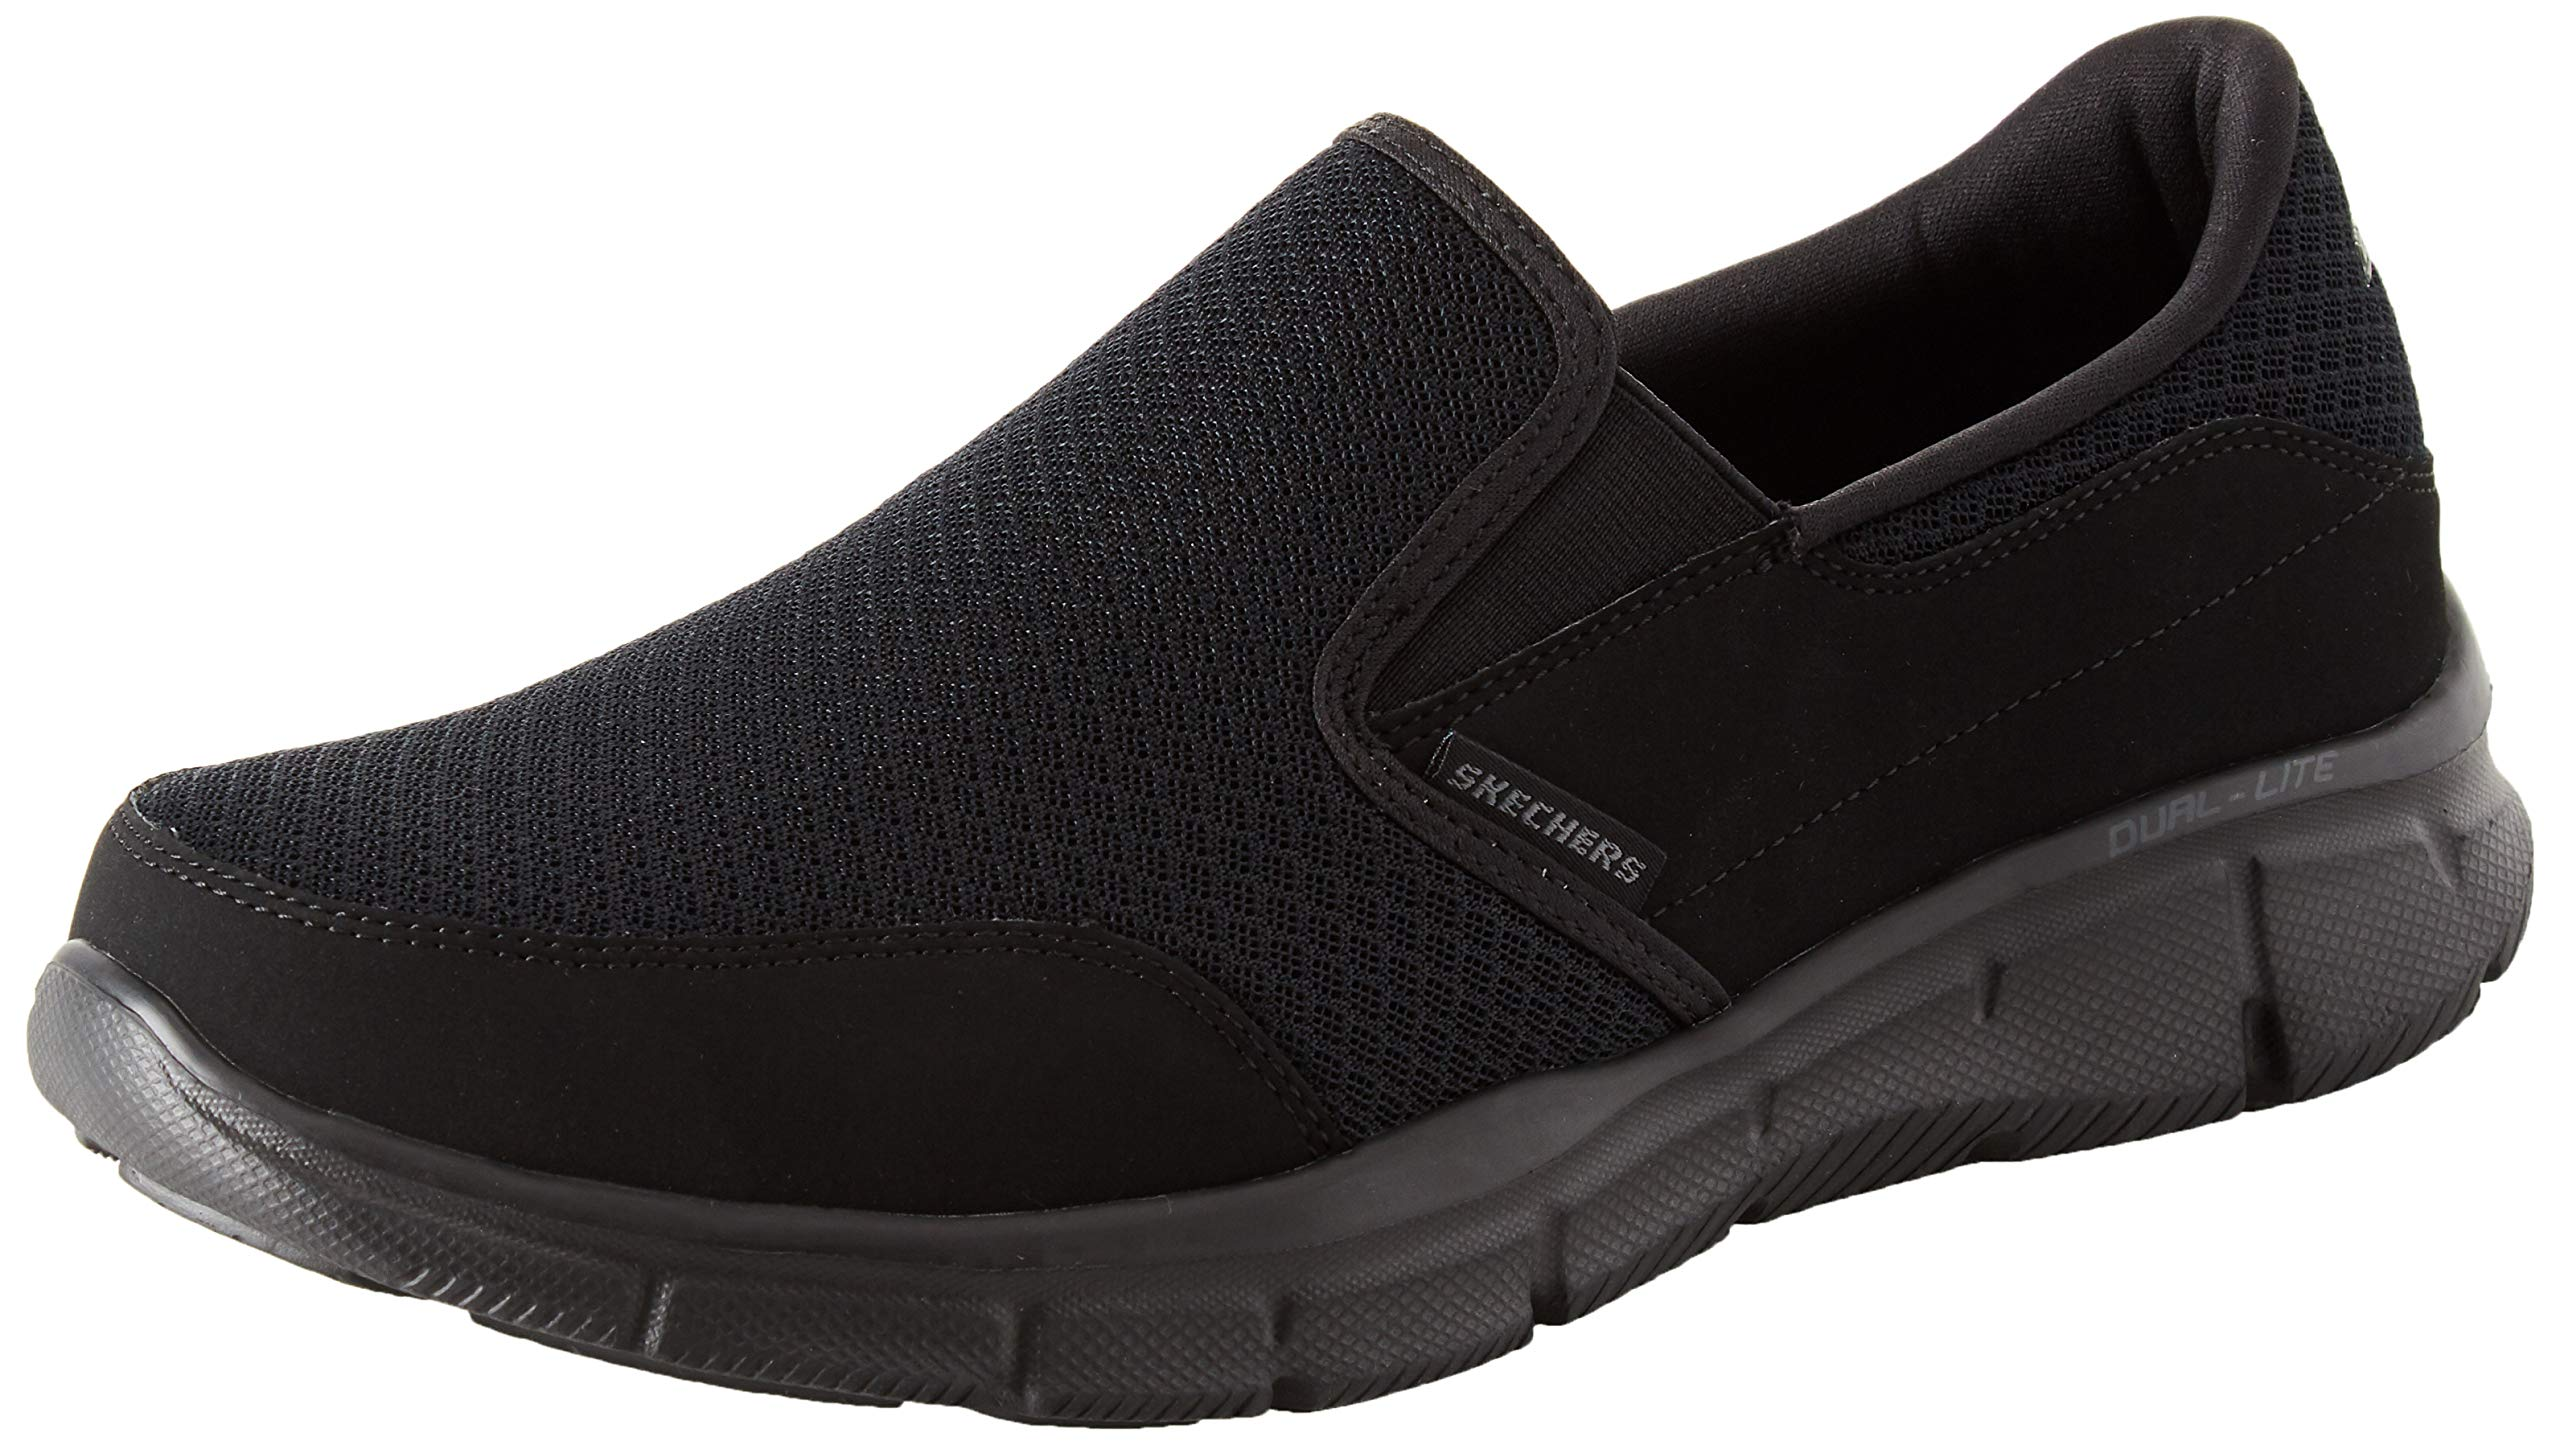 Skechers Sport Men's Equalizer Persistent Slip-On Sneaker, Black, 14 M US